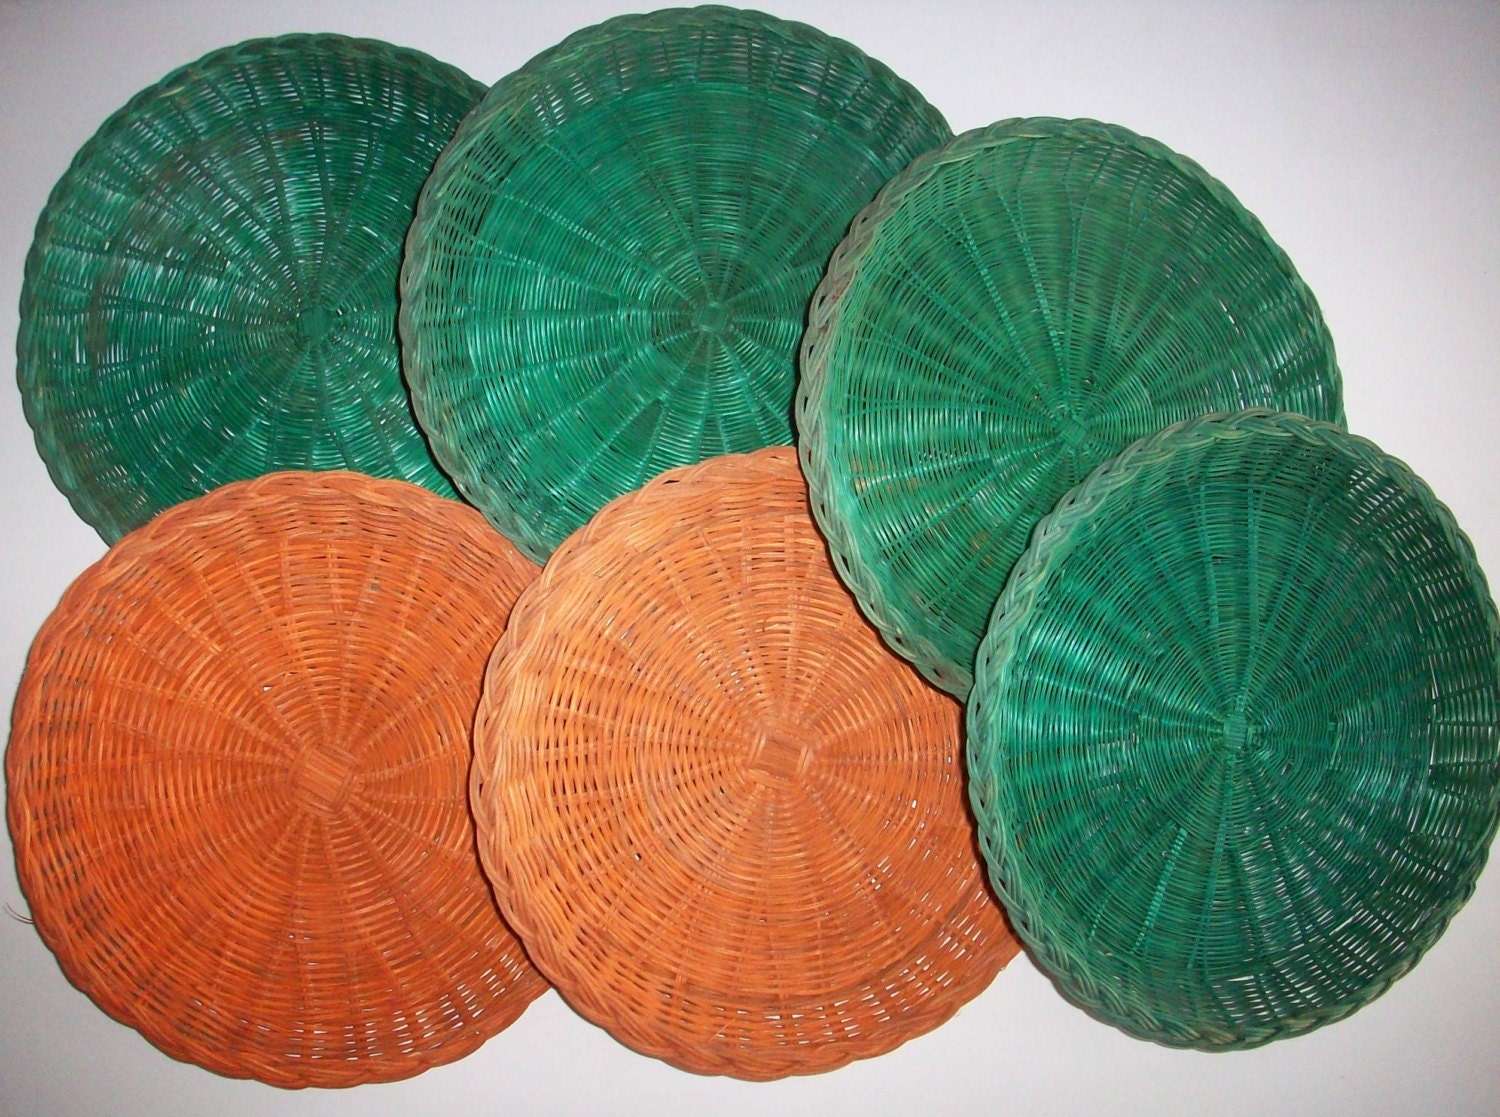 bamboo paper plate holders Here at the online store plate-holderscom you can shop for all of the plate holders you can't find anywhere else, including decorative plate stands and wall plate racks.